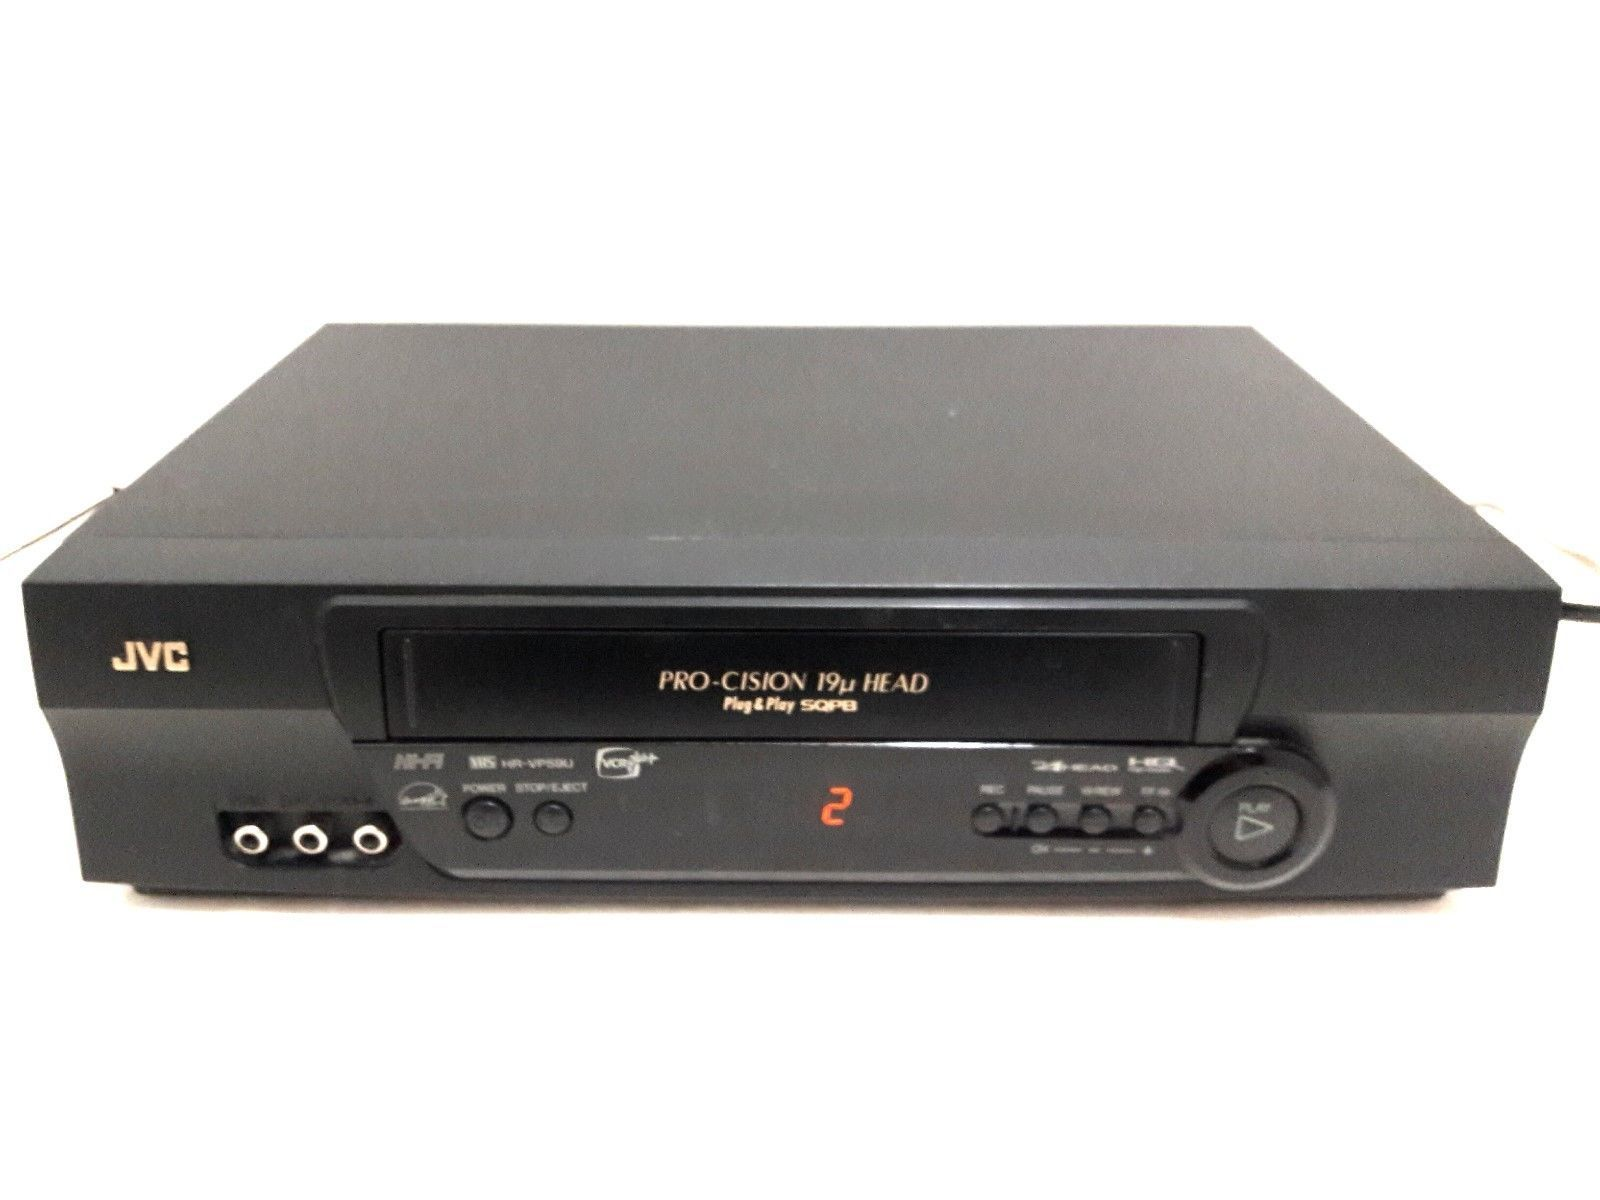 JVC Pro-Cision 4-Head Plug & Play SQPB Hi-Fi VHS/VCR Model HR-VP59U